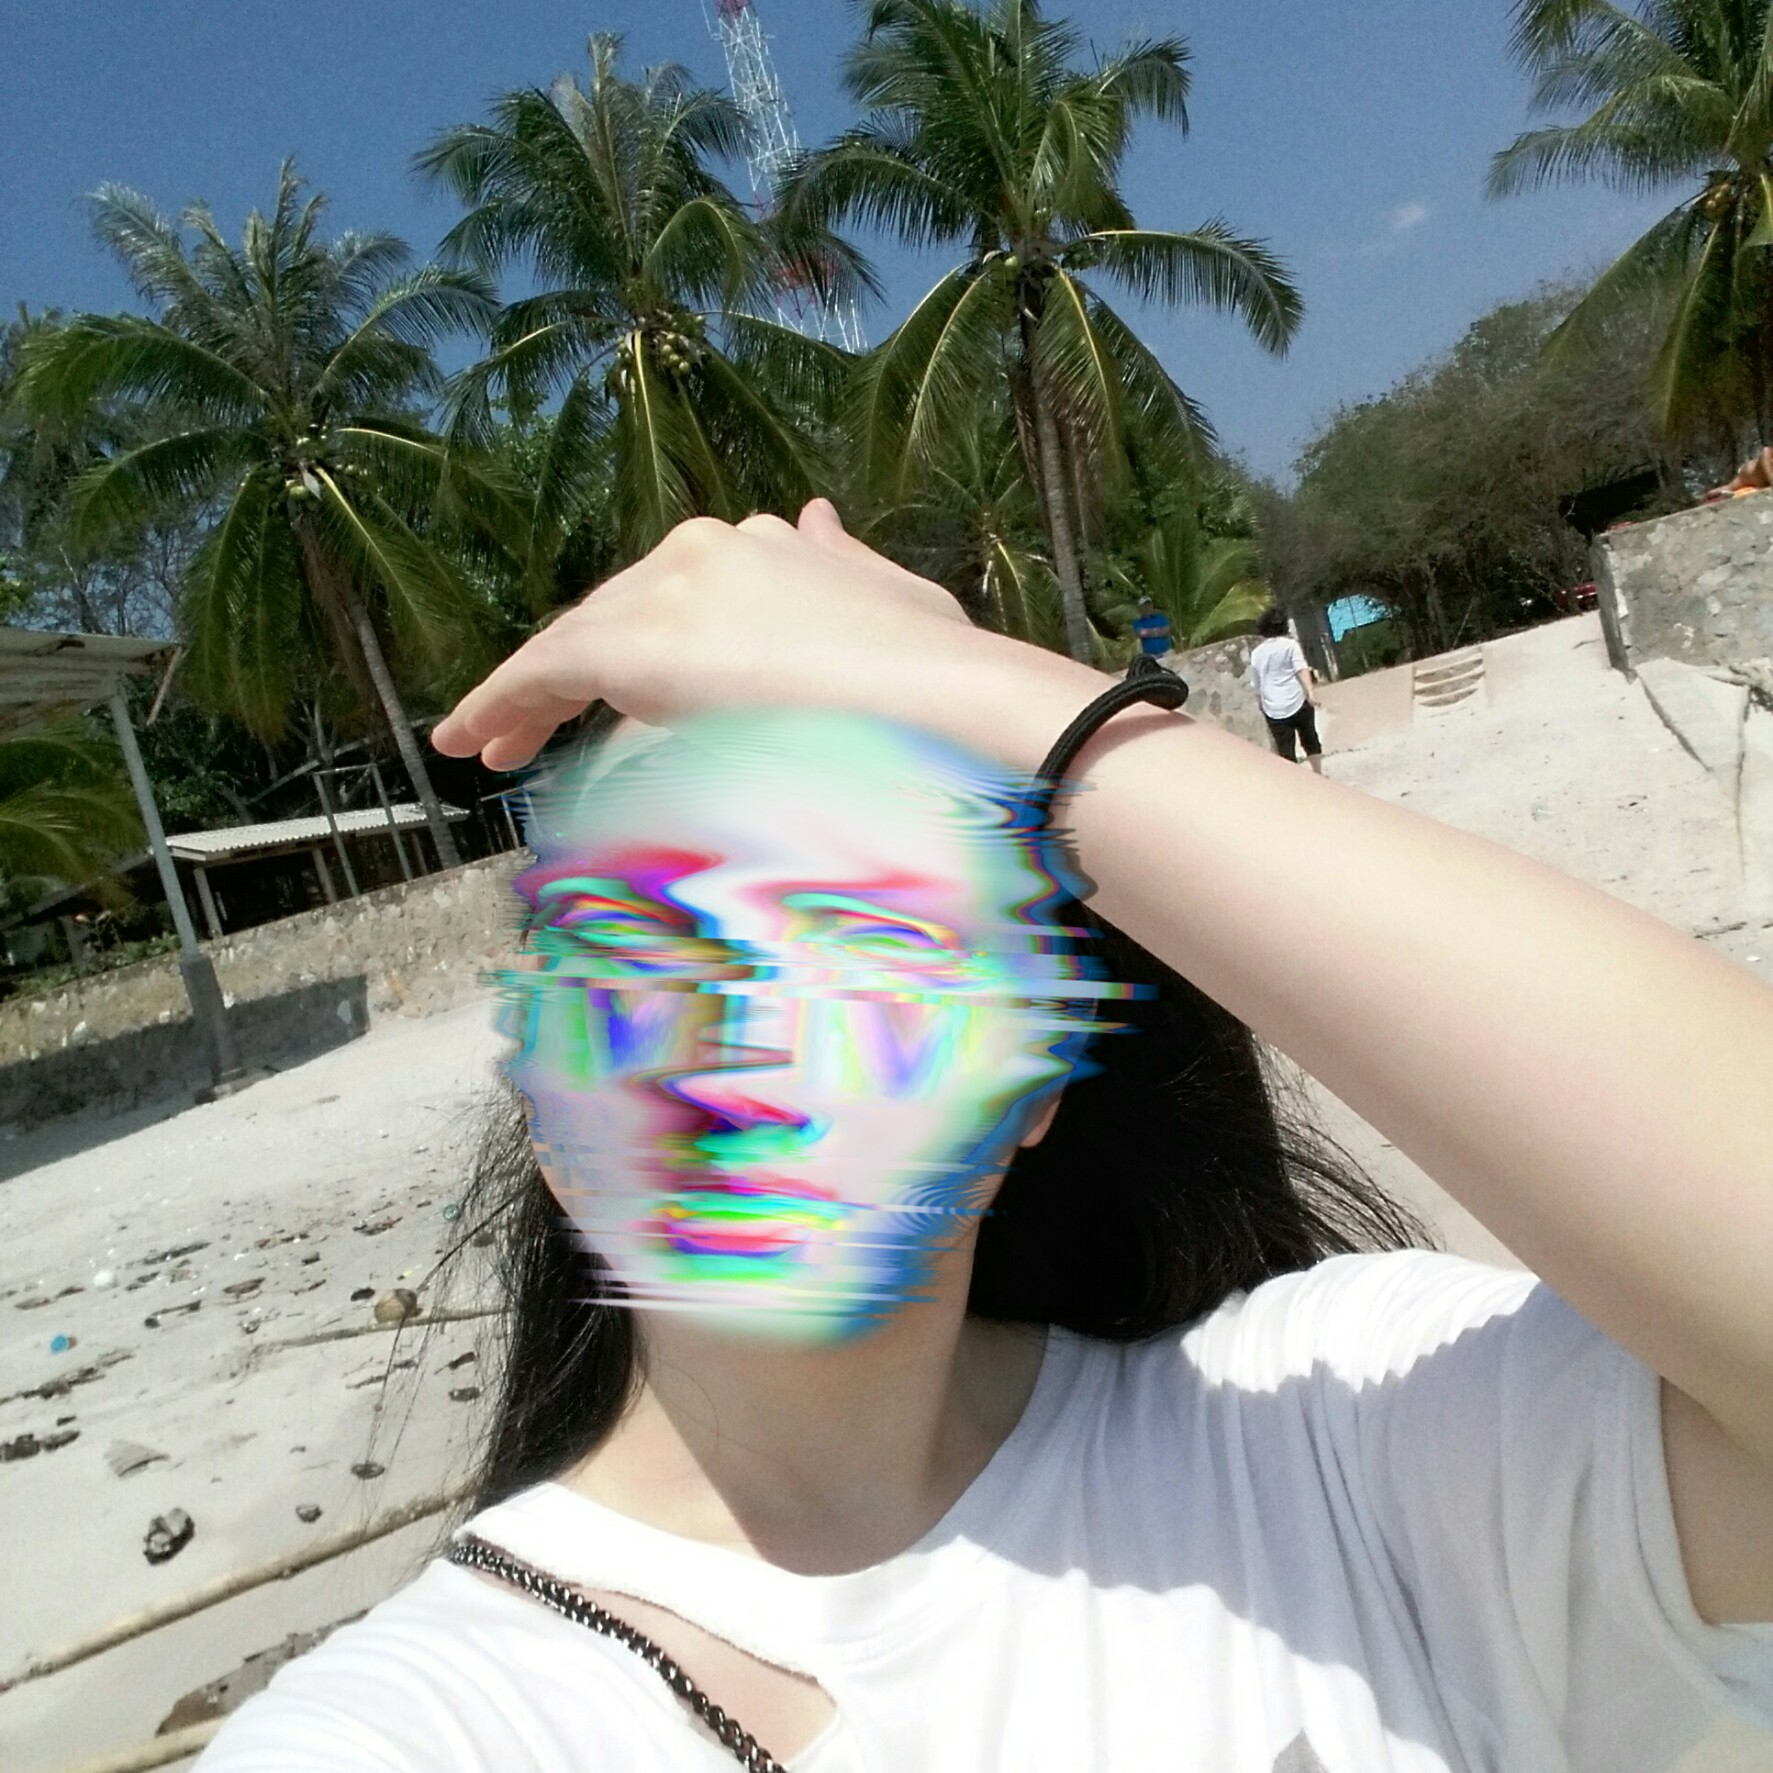 ?#omg #glitch #selfie #collage #selca #cool #weird #funny #me #beach #love #weather #sunny #summer #vibes